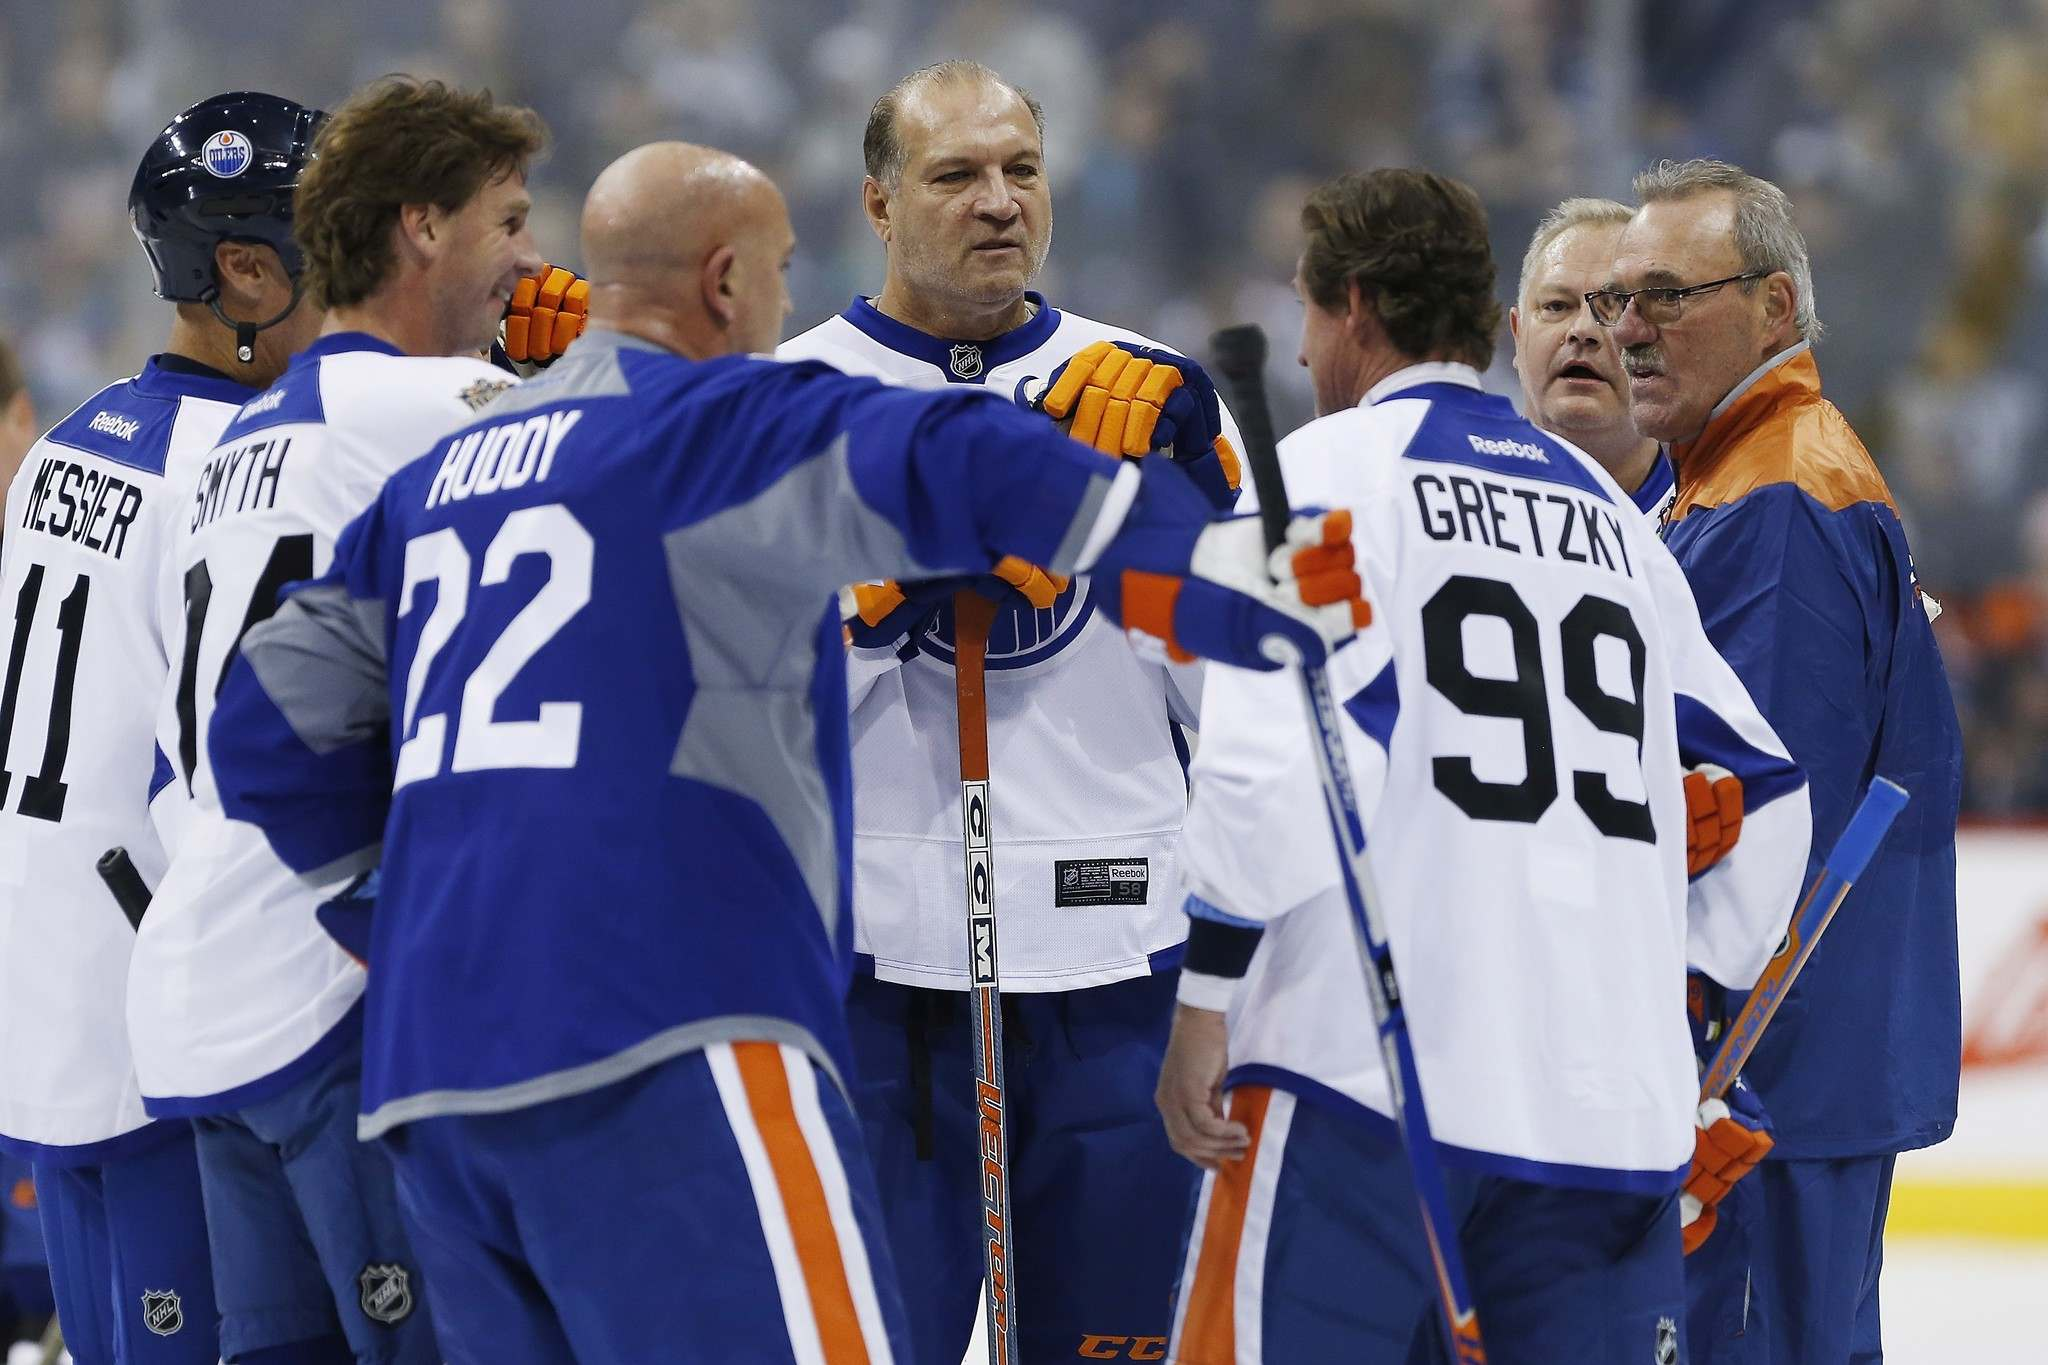 John Woods / The Canadian Press</p><p>Former Edmonton Oilers Dave Semenko, centre, and others listen in as captain Wayne Gretzky (99) leads a huddle during a practice for the NHL's Heritage Classic Alumni game in Winnipeg on Friday.</p>